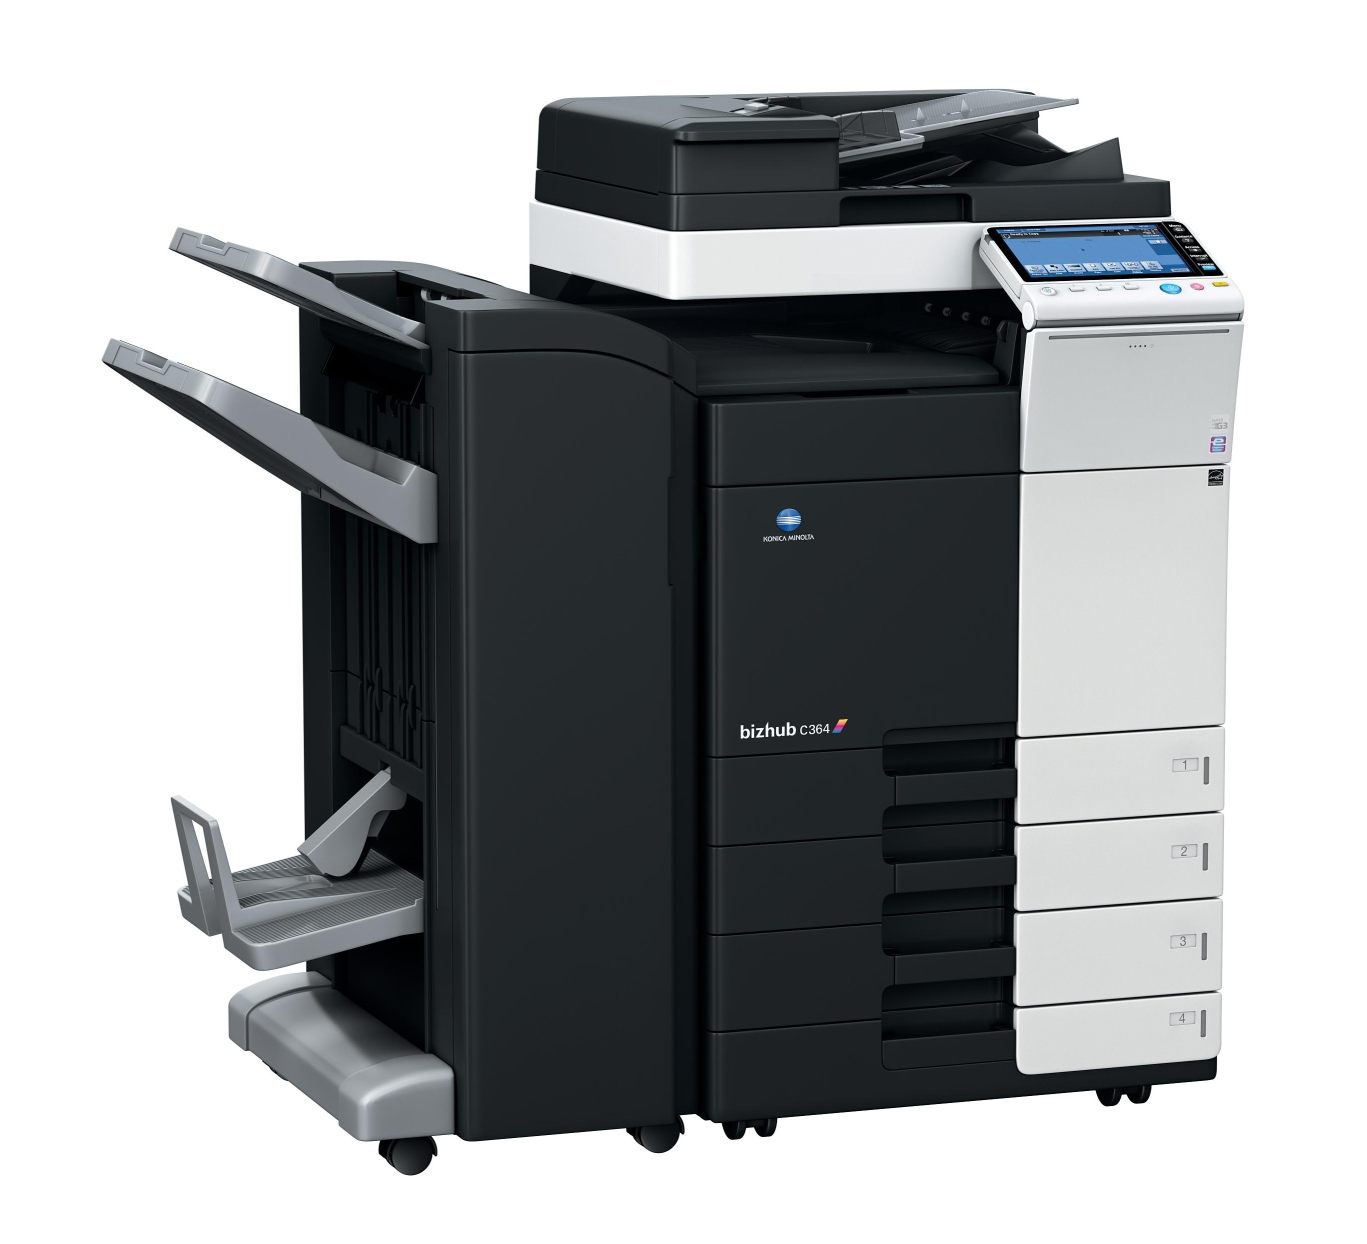 konica minolta bizhub c364 copiers direct rh copiersdirect co uk Bizhub C364 Owner Manual konica minolta bizhub c364 user manual